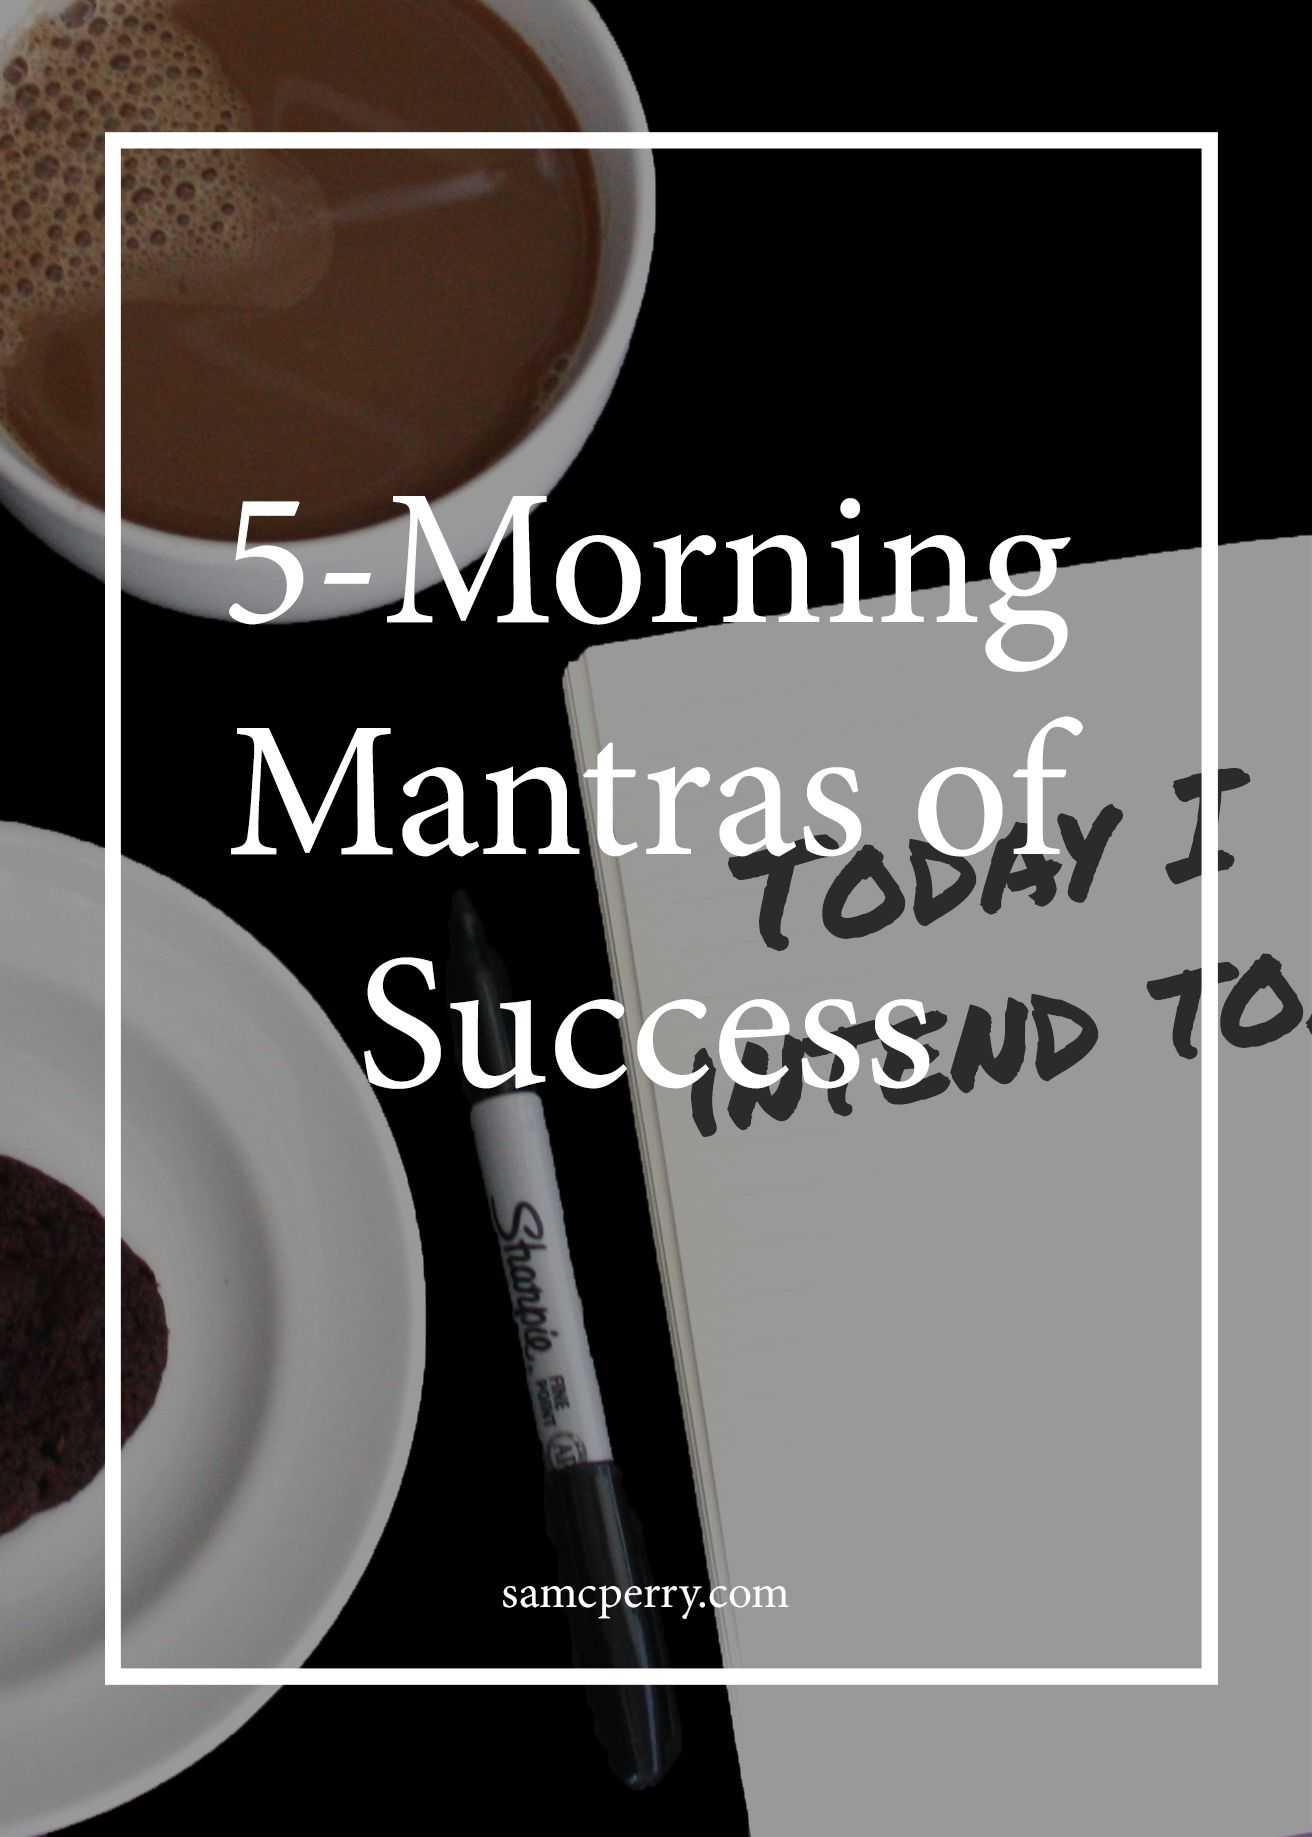 5-Morning Mantras of Success | Spiritual | Morning mantra